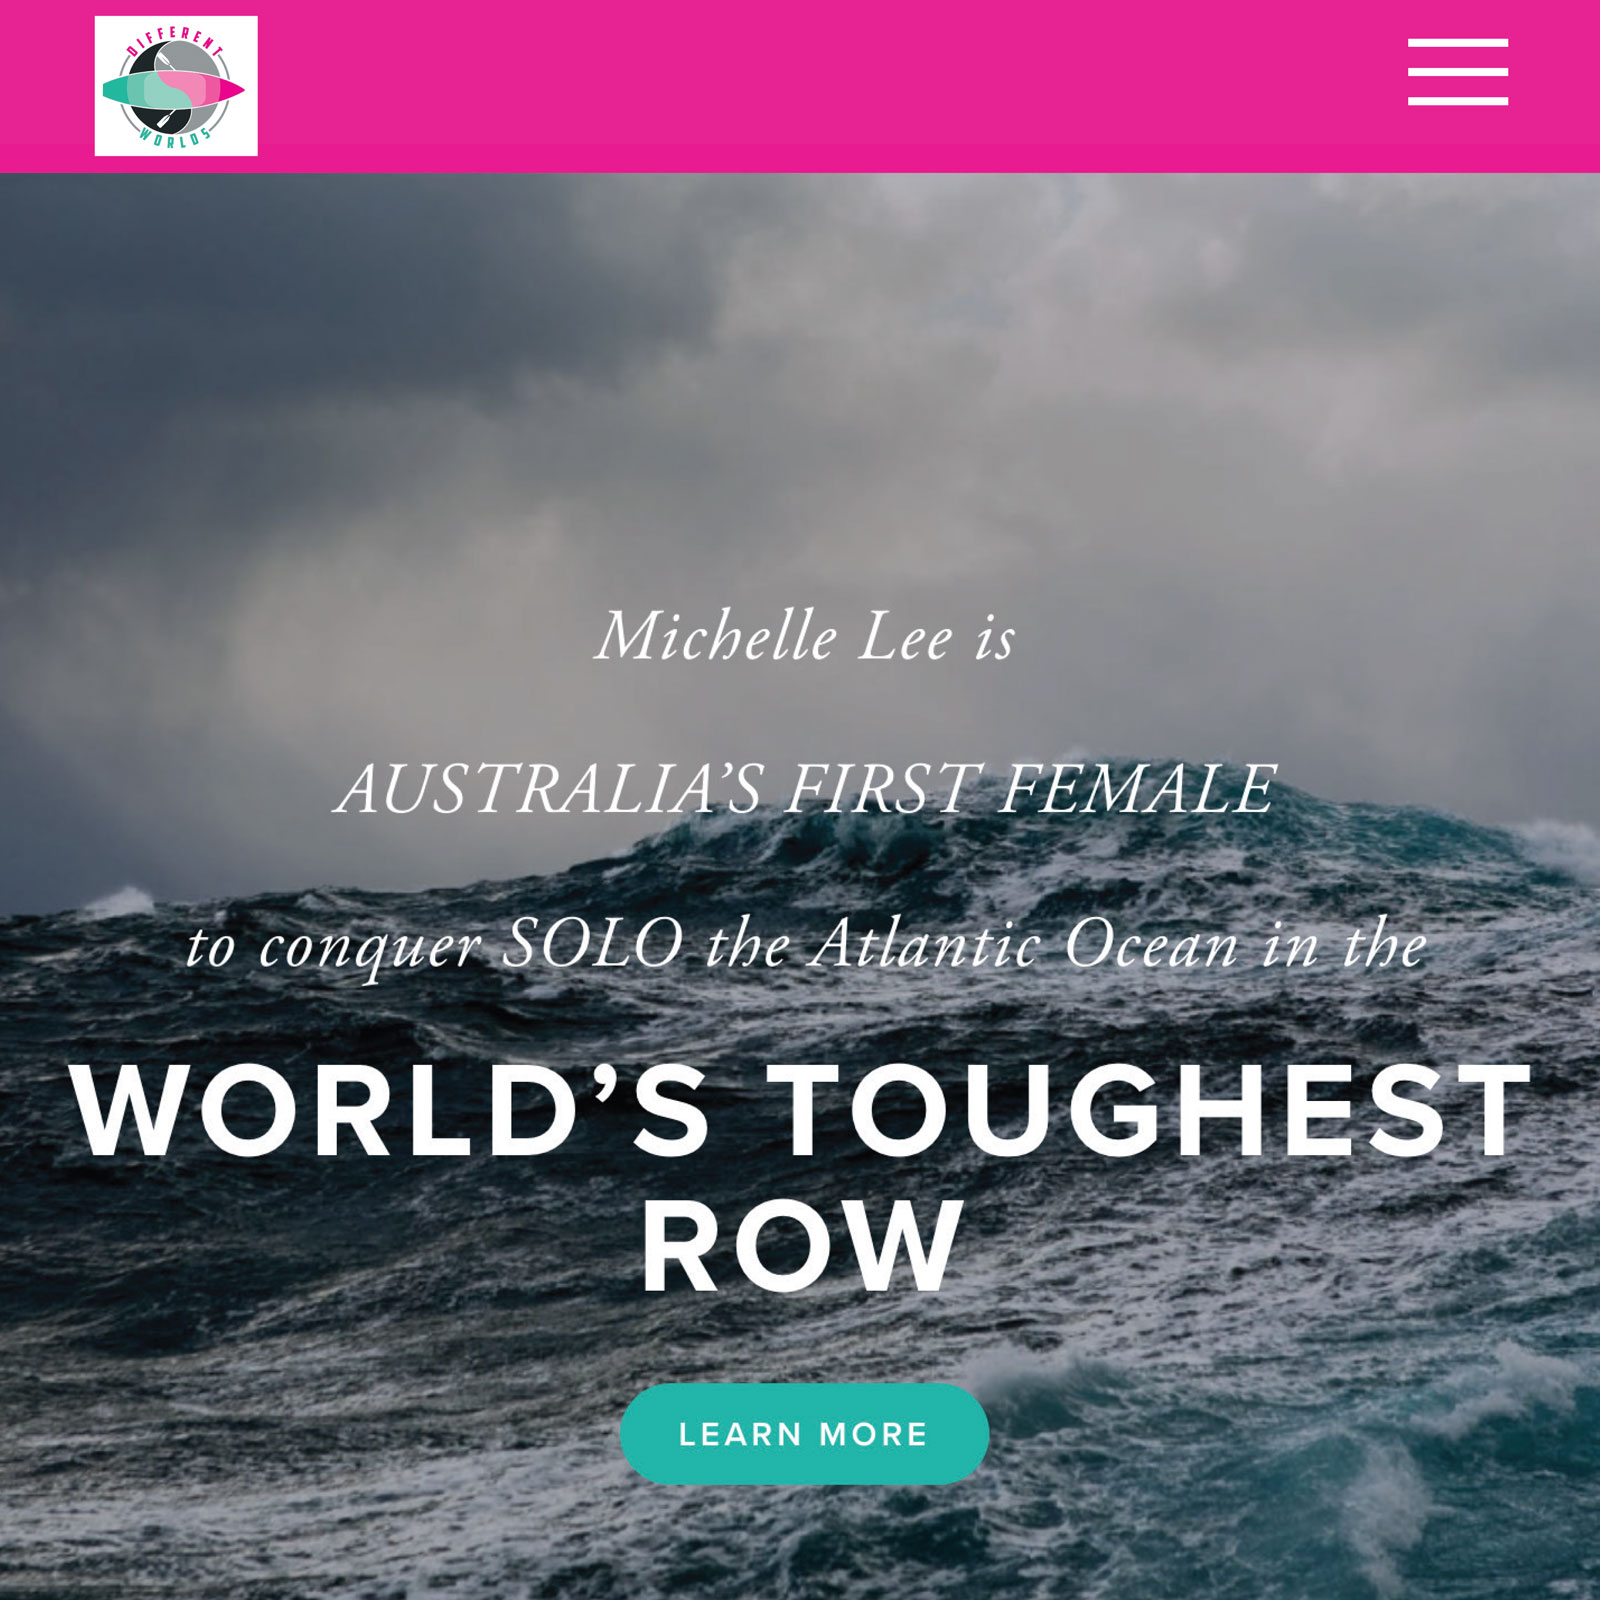 Australian Geographical Adventurer of the Year, Michelle Lee